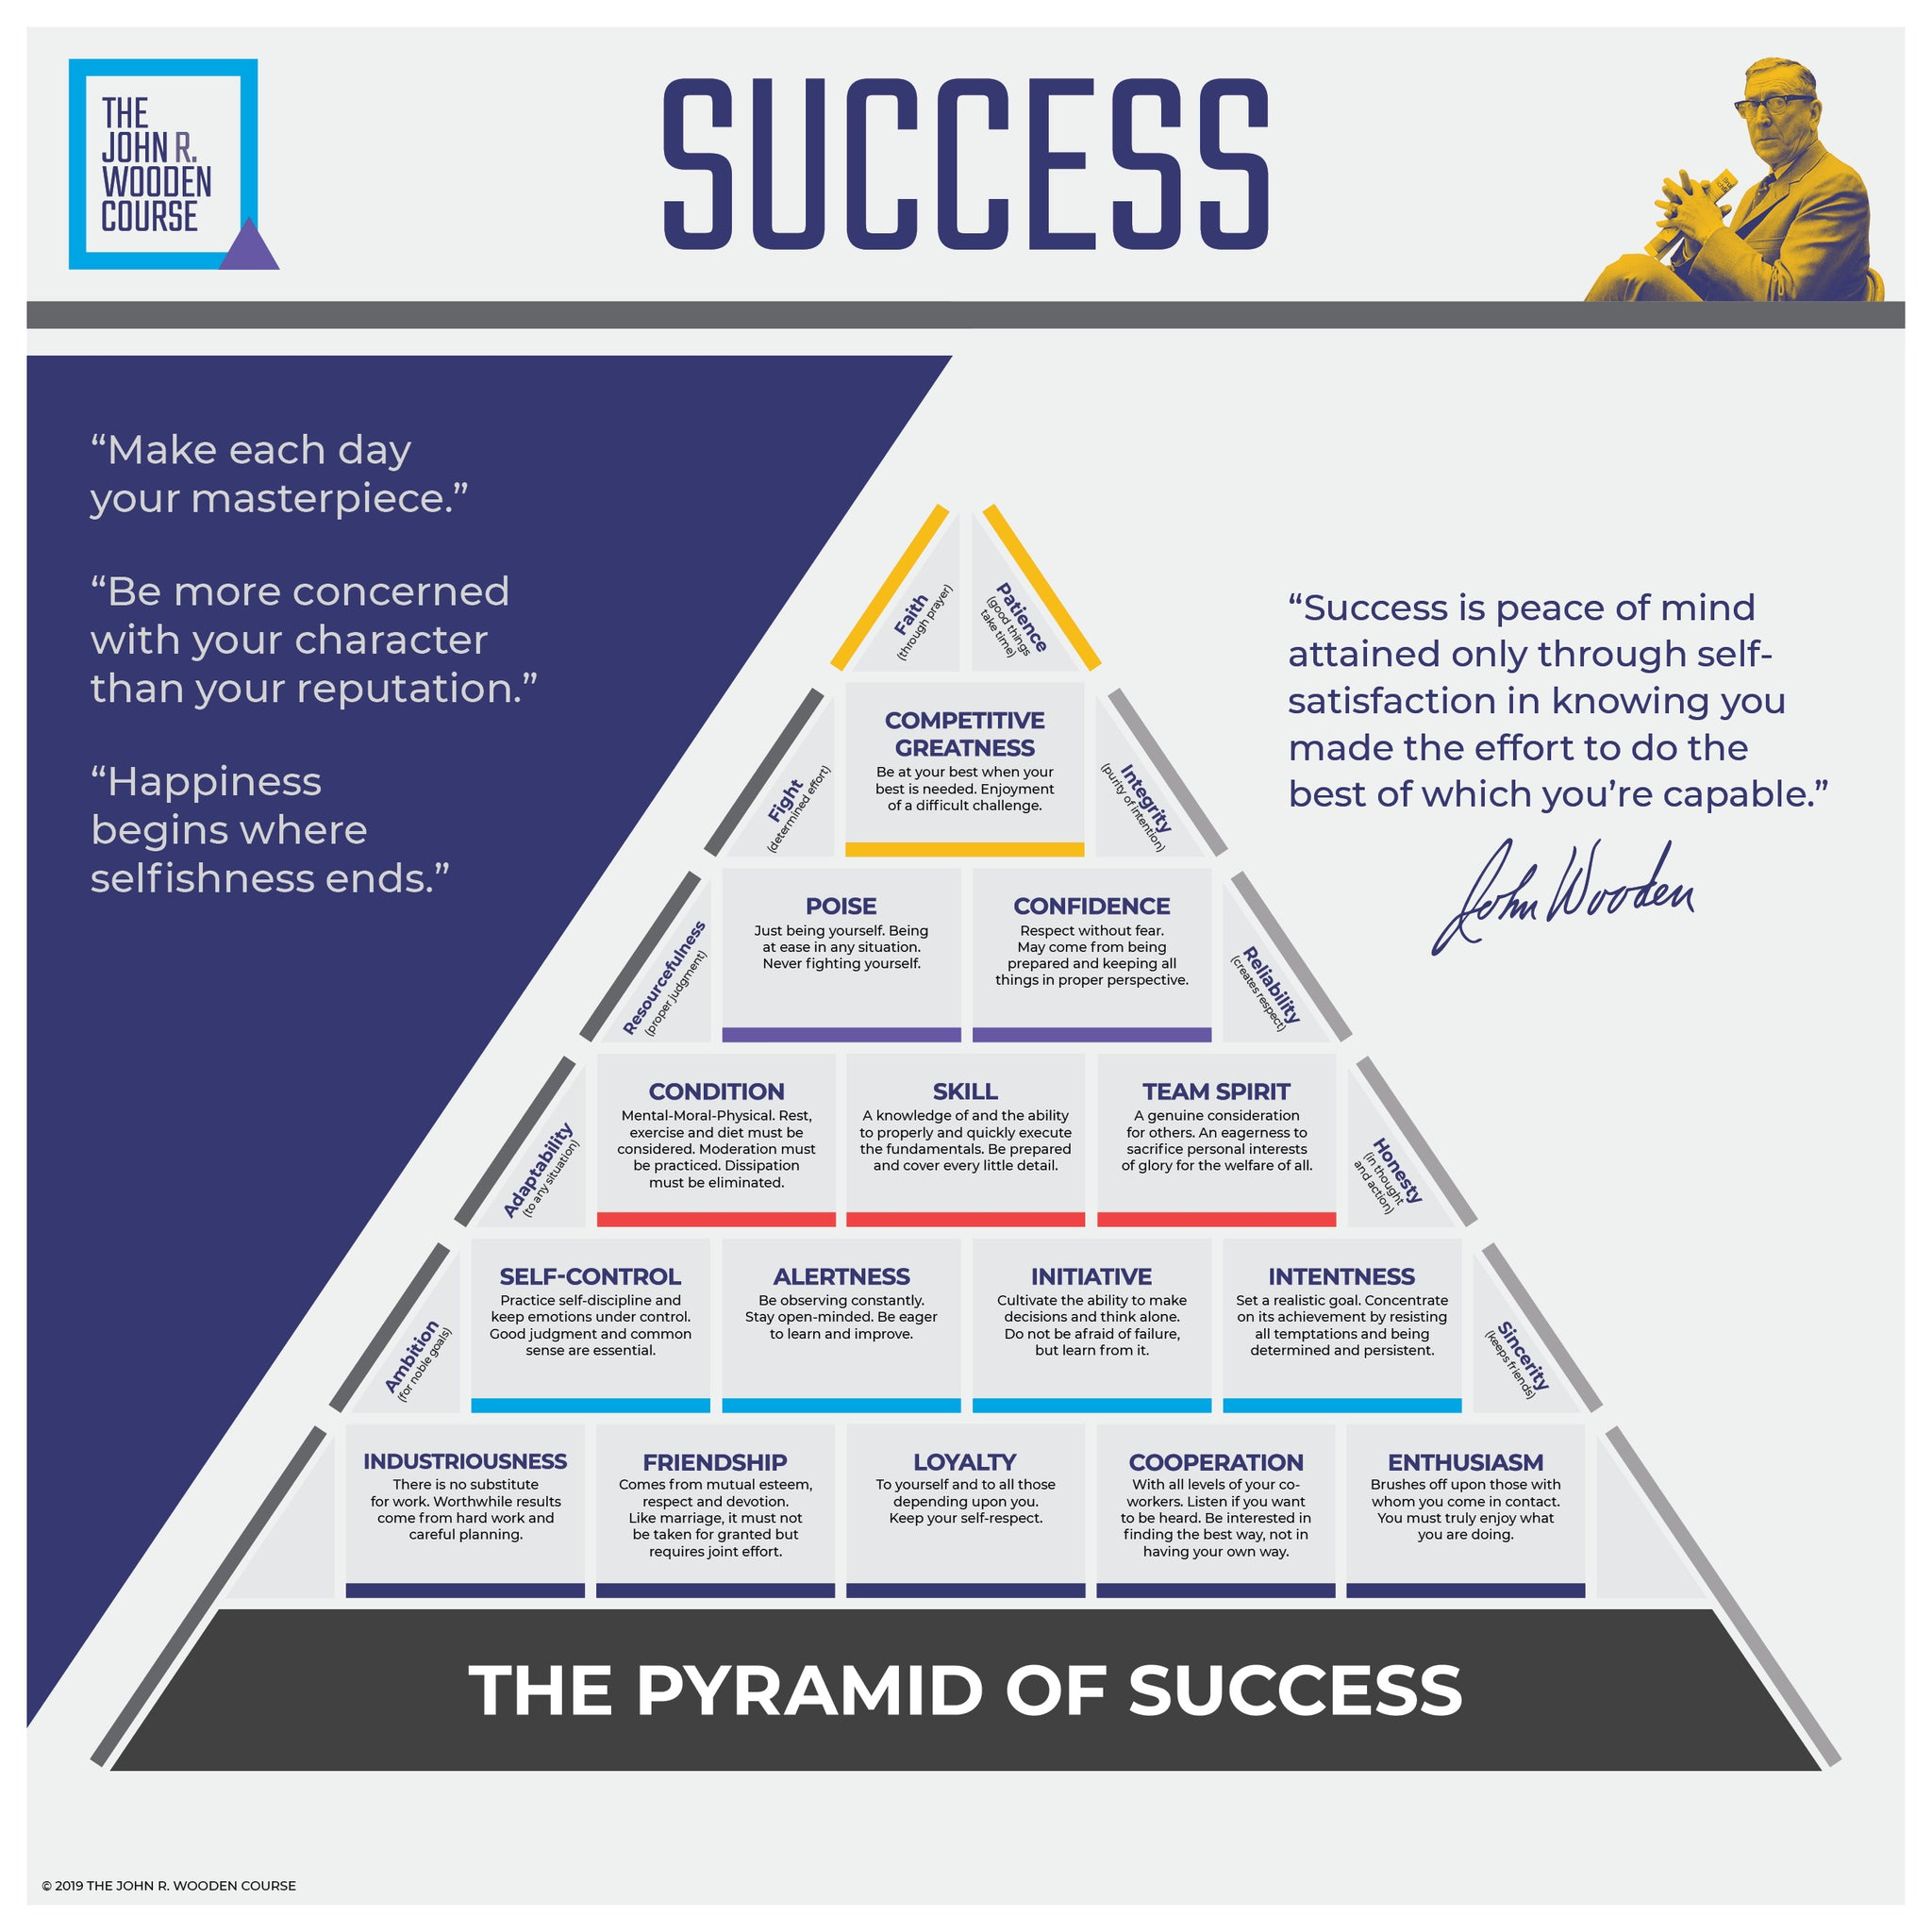 photograph regarding John Wooden Pyramid of Success Printable referred to as The John R. Wood Program Pyramid Of Achievement Fathead Wall Picture